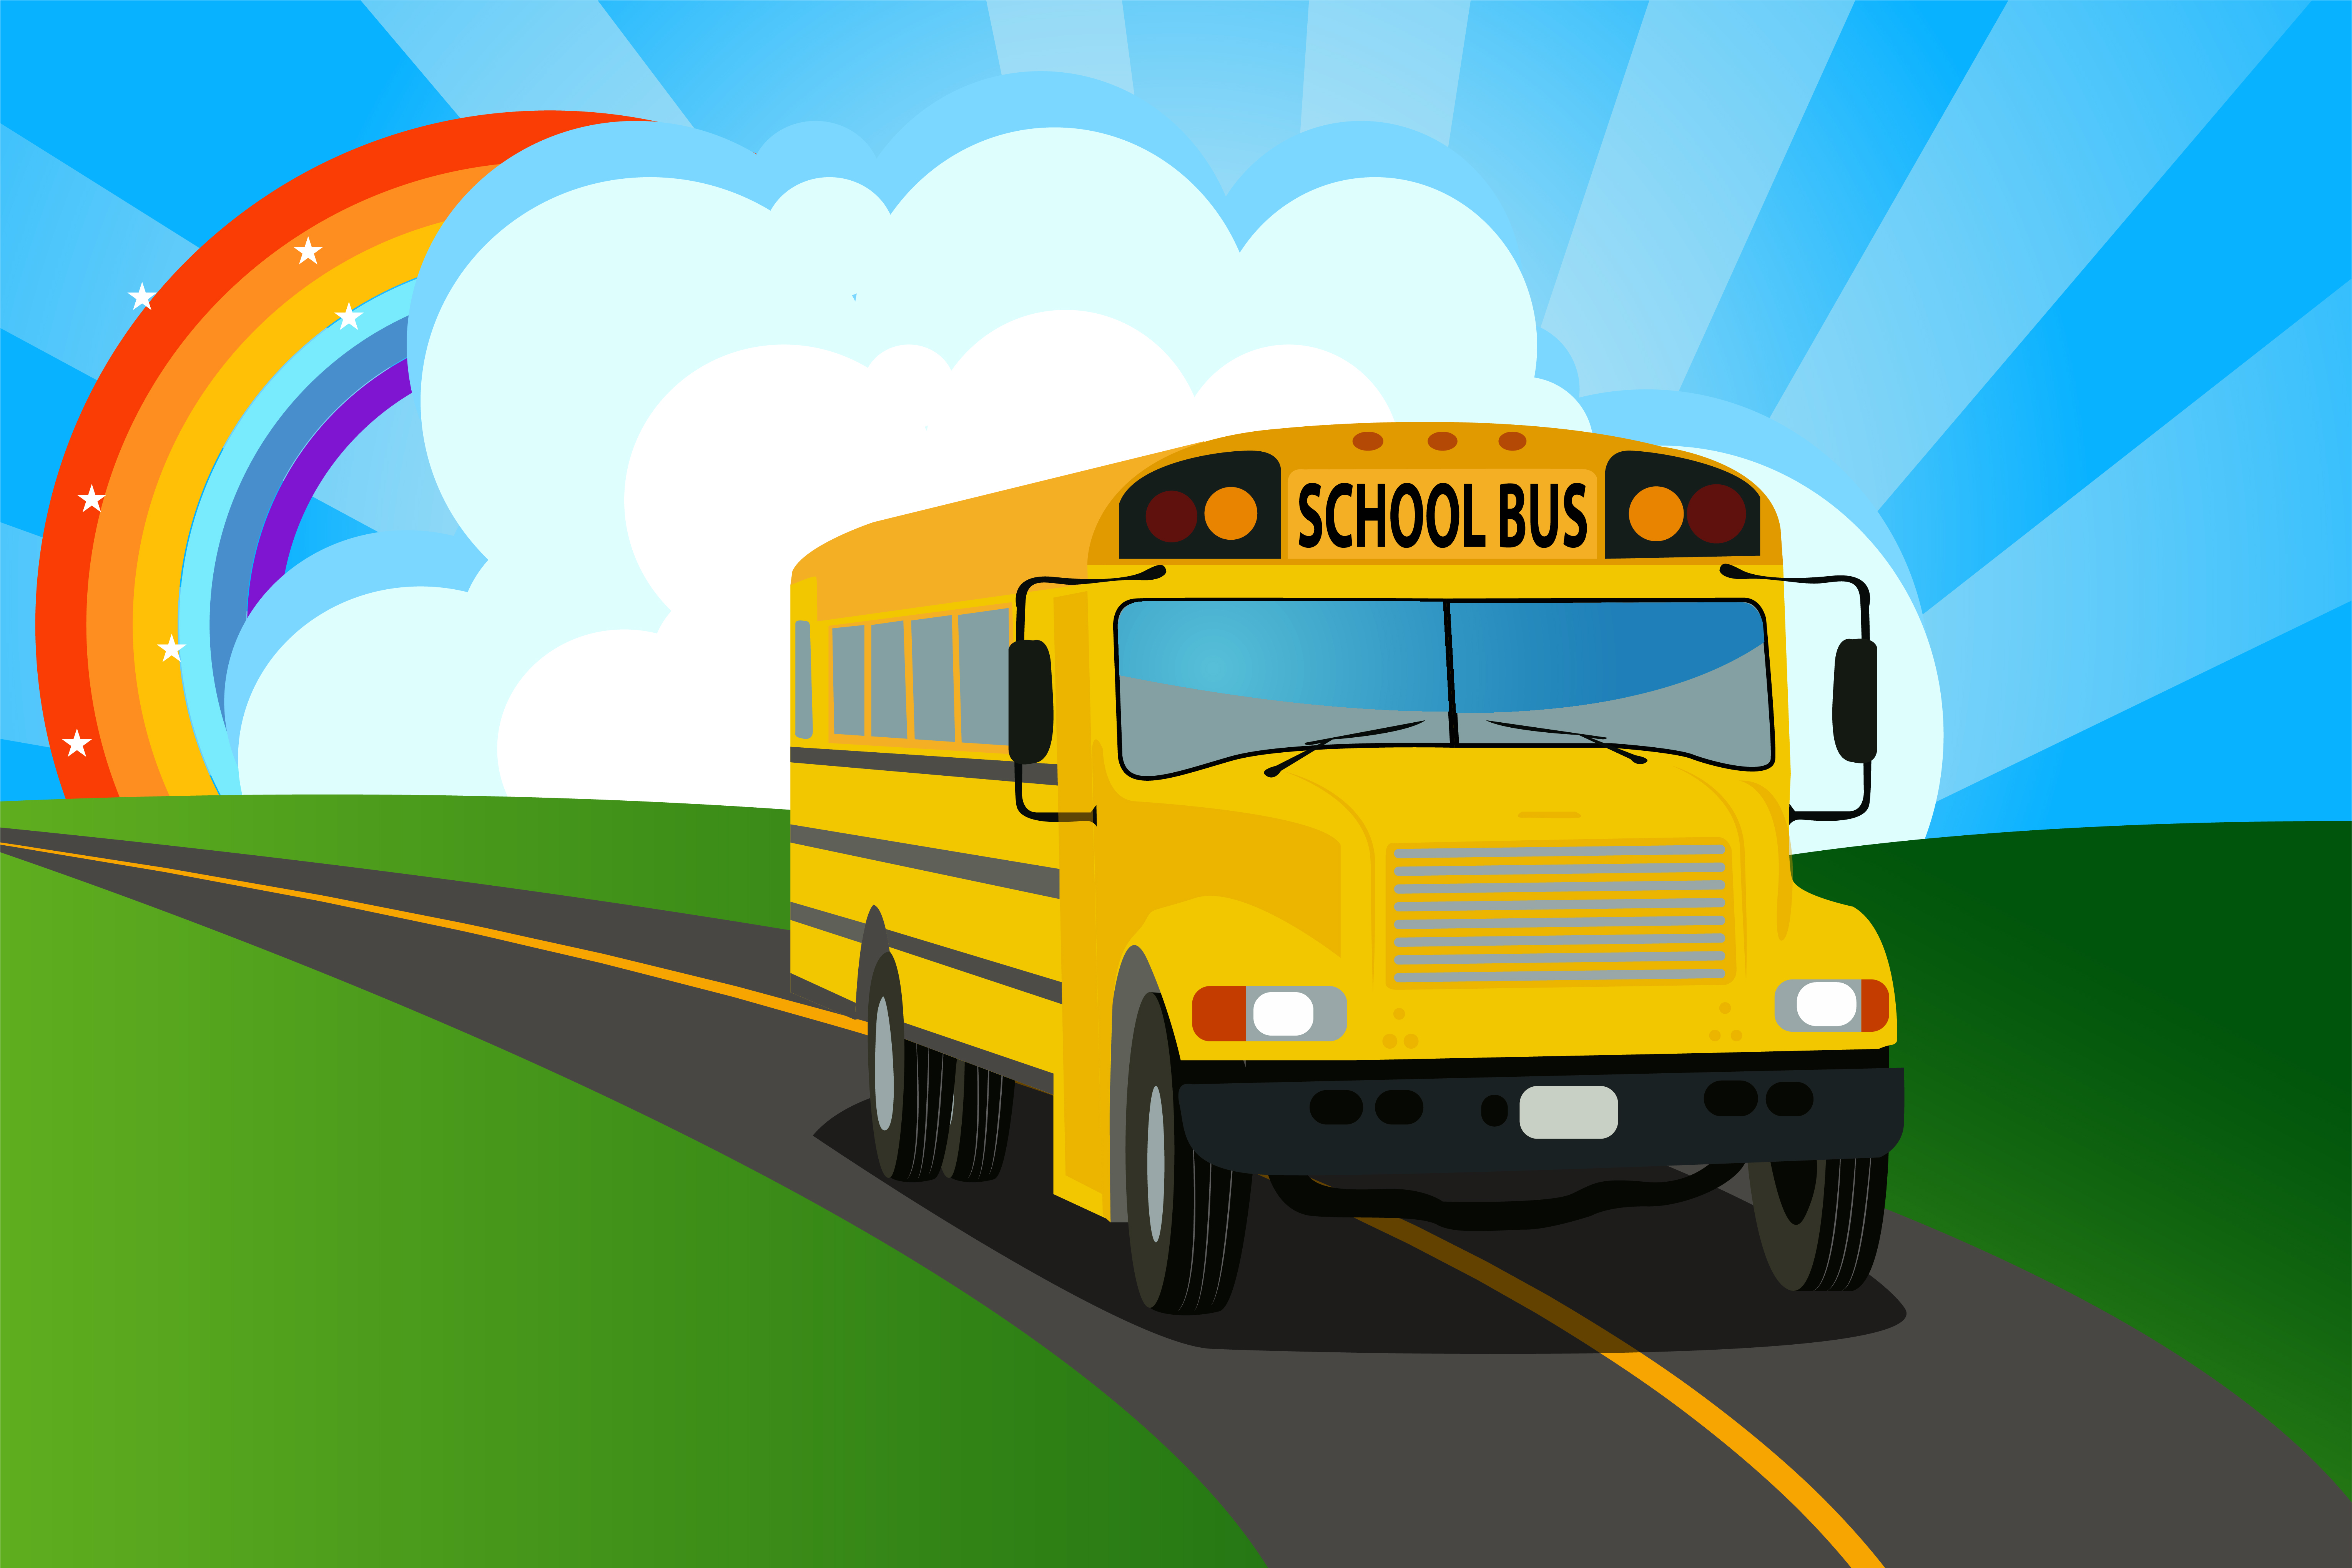 Gallery For gt School Bus Background 6119x4079